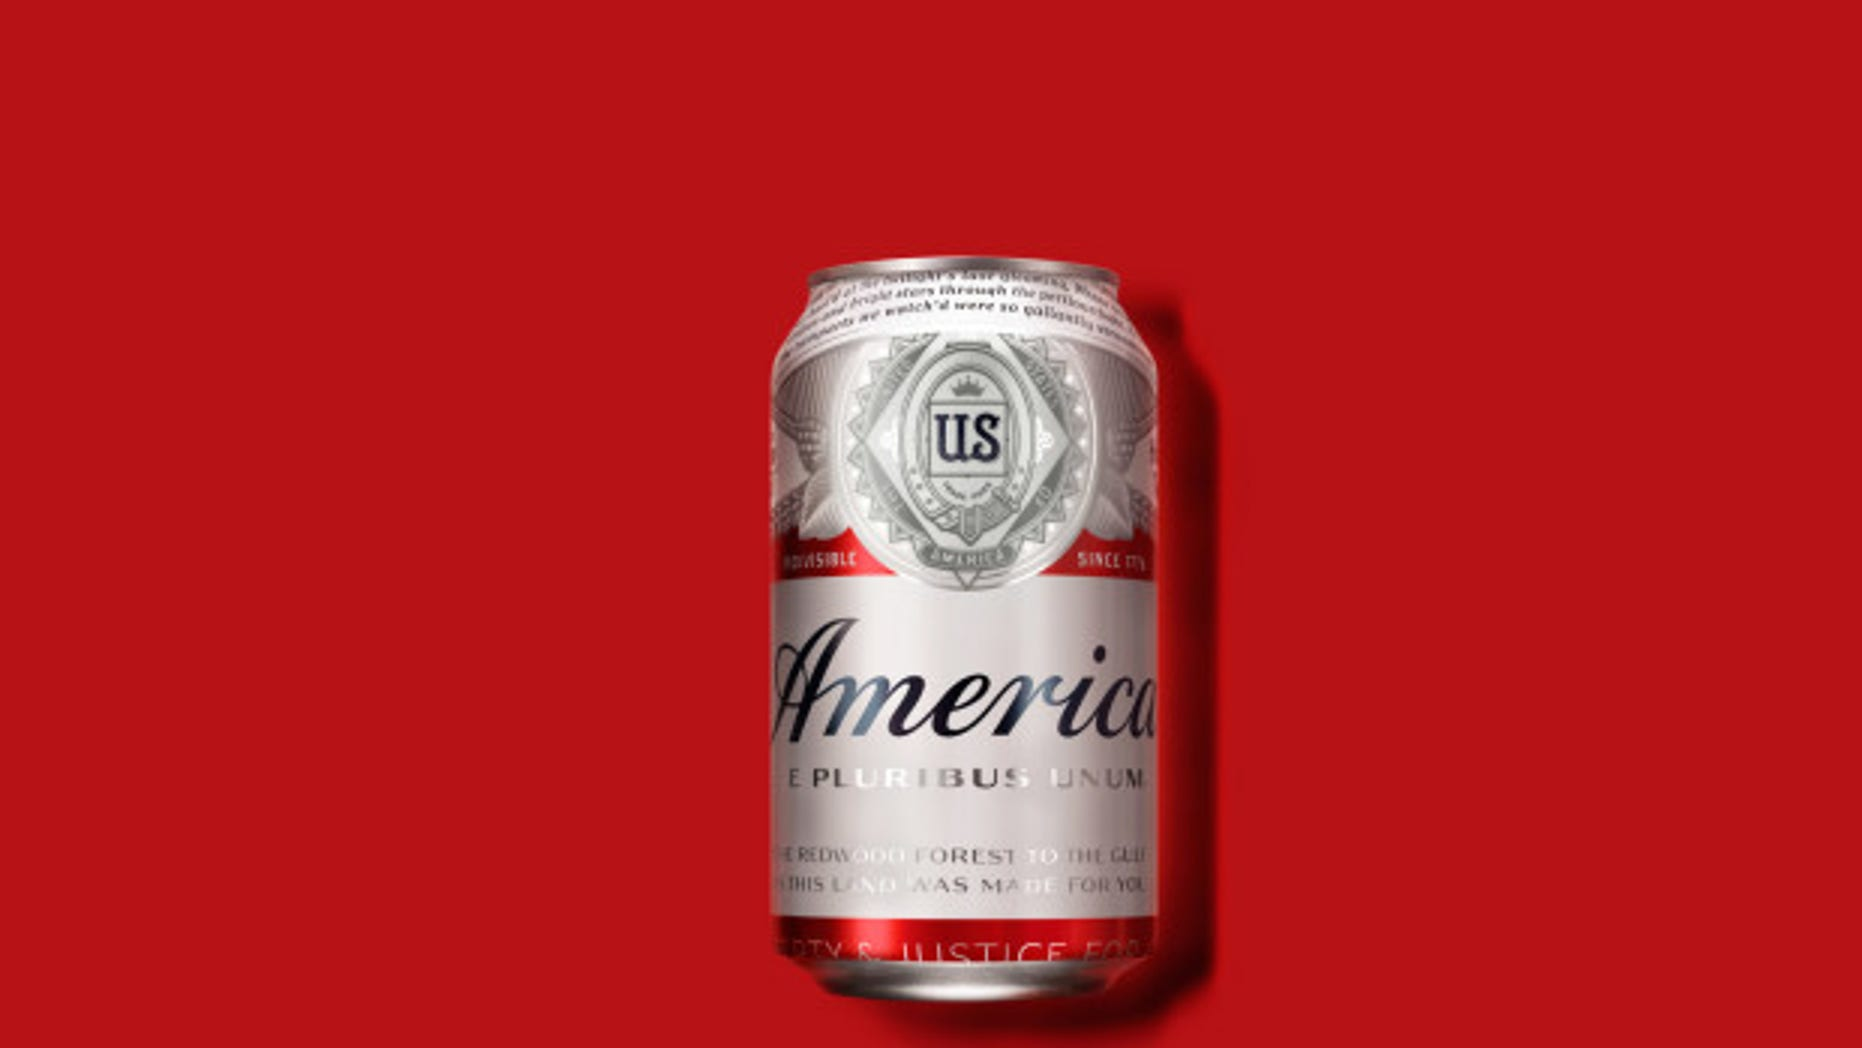 Budweiser has received flack for renaming itself America when its no longer an American-owned brand.